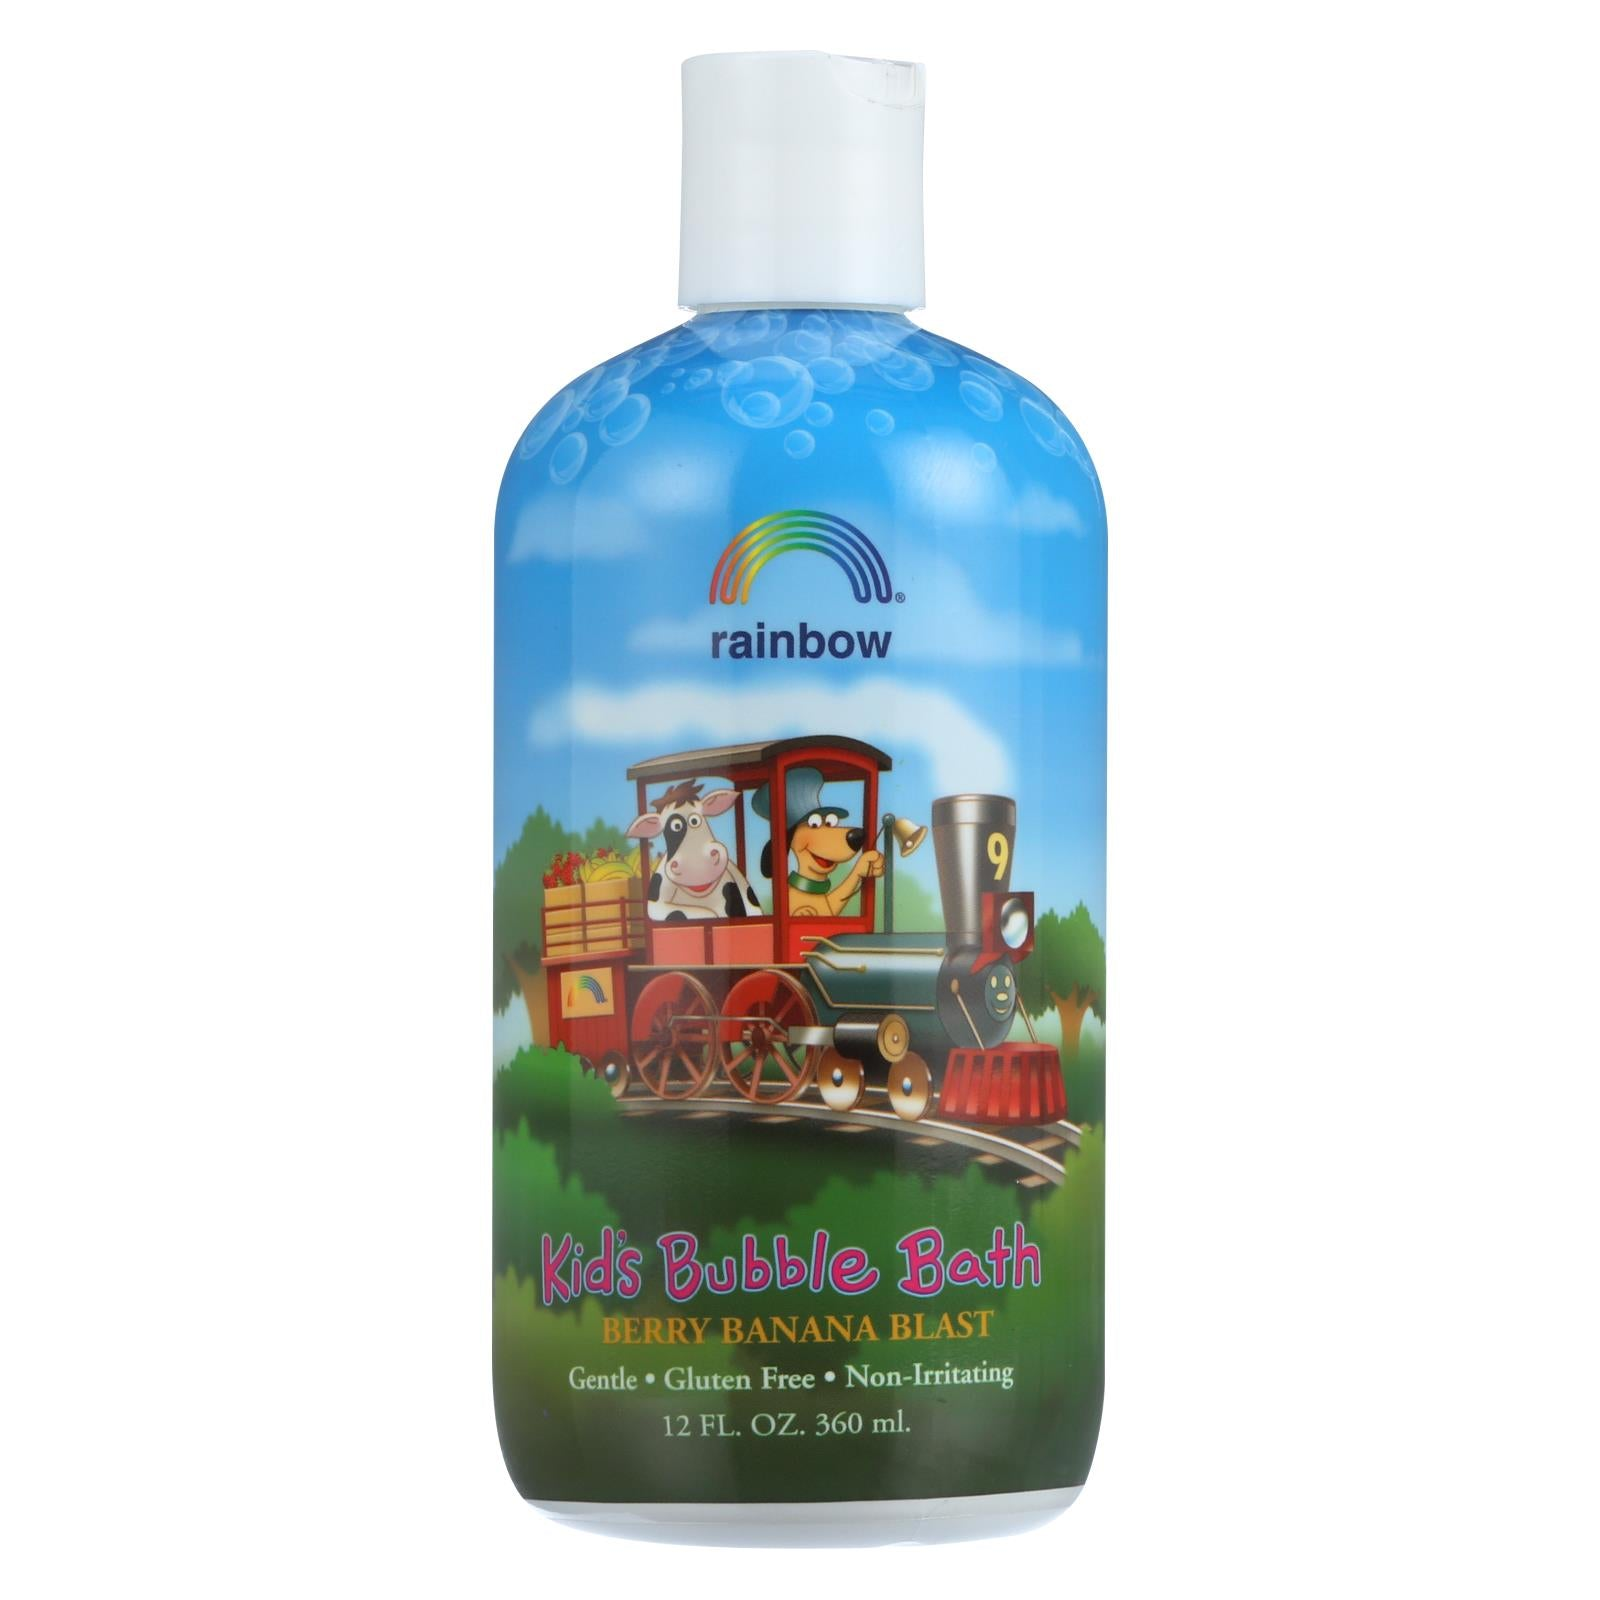 Buy Rainbow Research Organic Herbal Bubble Bath For Kids Berry Banana Blast - 12 fl oz - Baby Bath and Shampoo from Veroeco.com